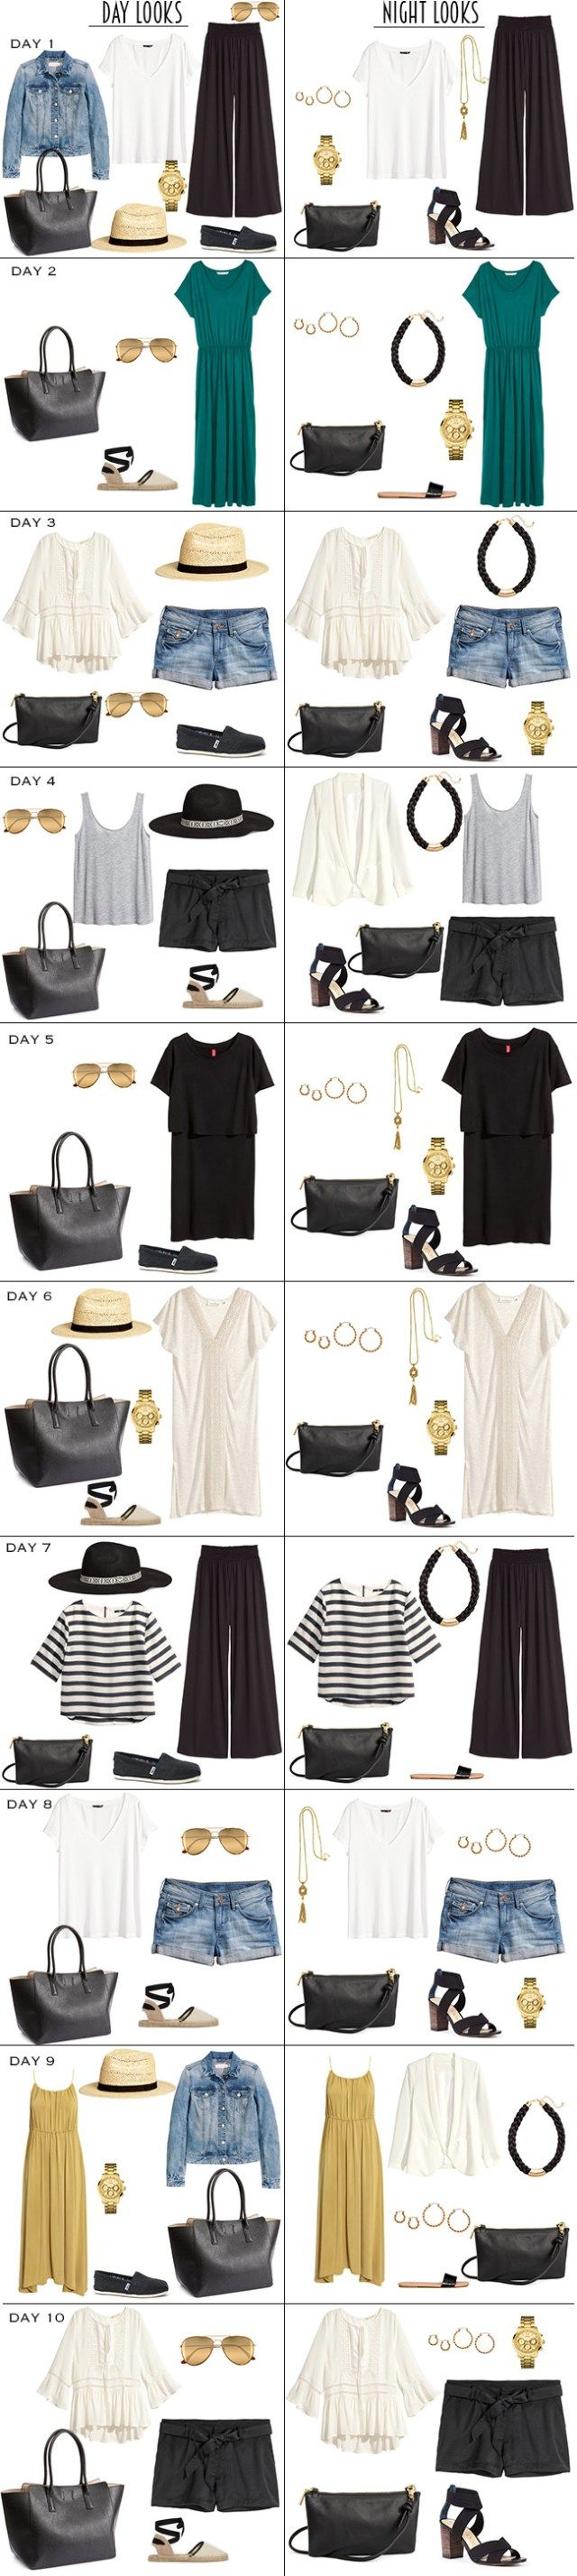 10 Day To Night Looks Carribean - via livelovesara.com